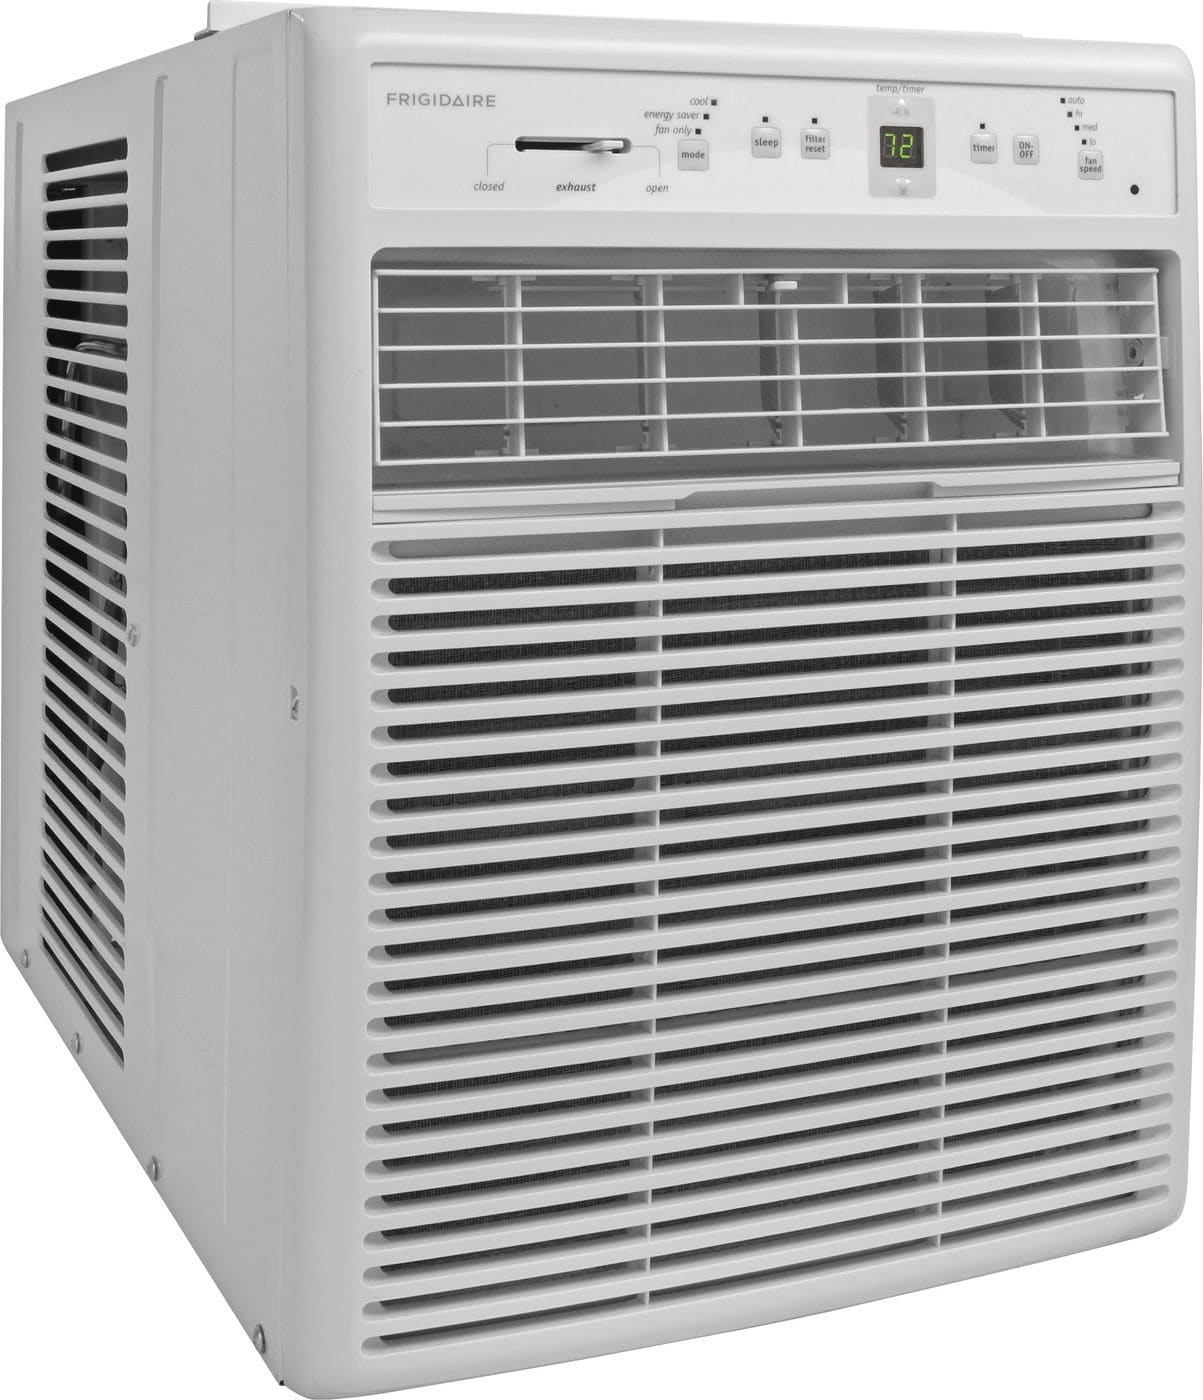 Model: FFRS0822S1 | Frigidaire 8,000 BTU  Window-Mounted Slider / Casement Air Conditioner